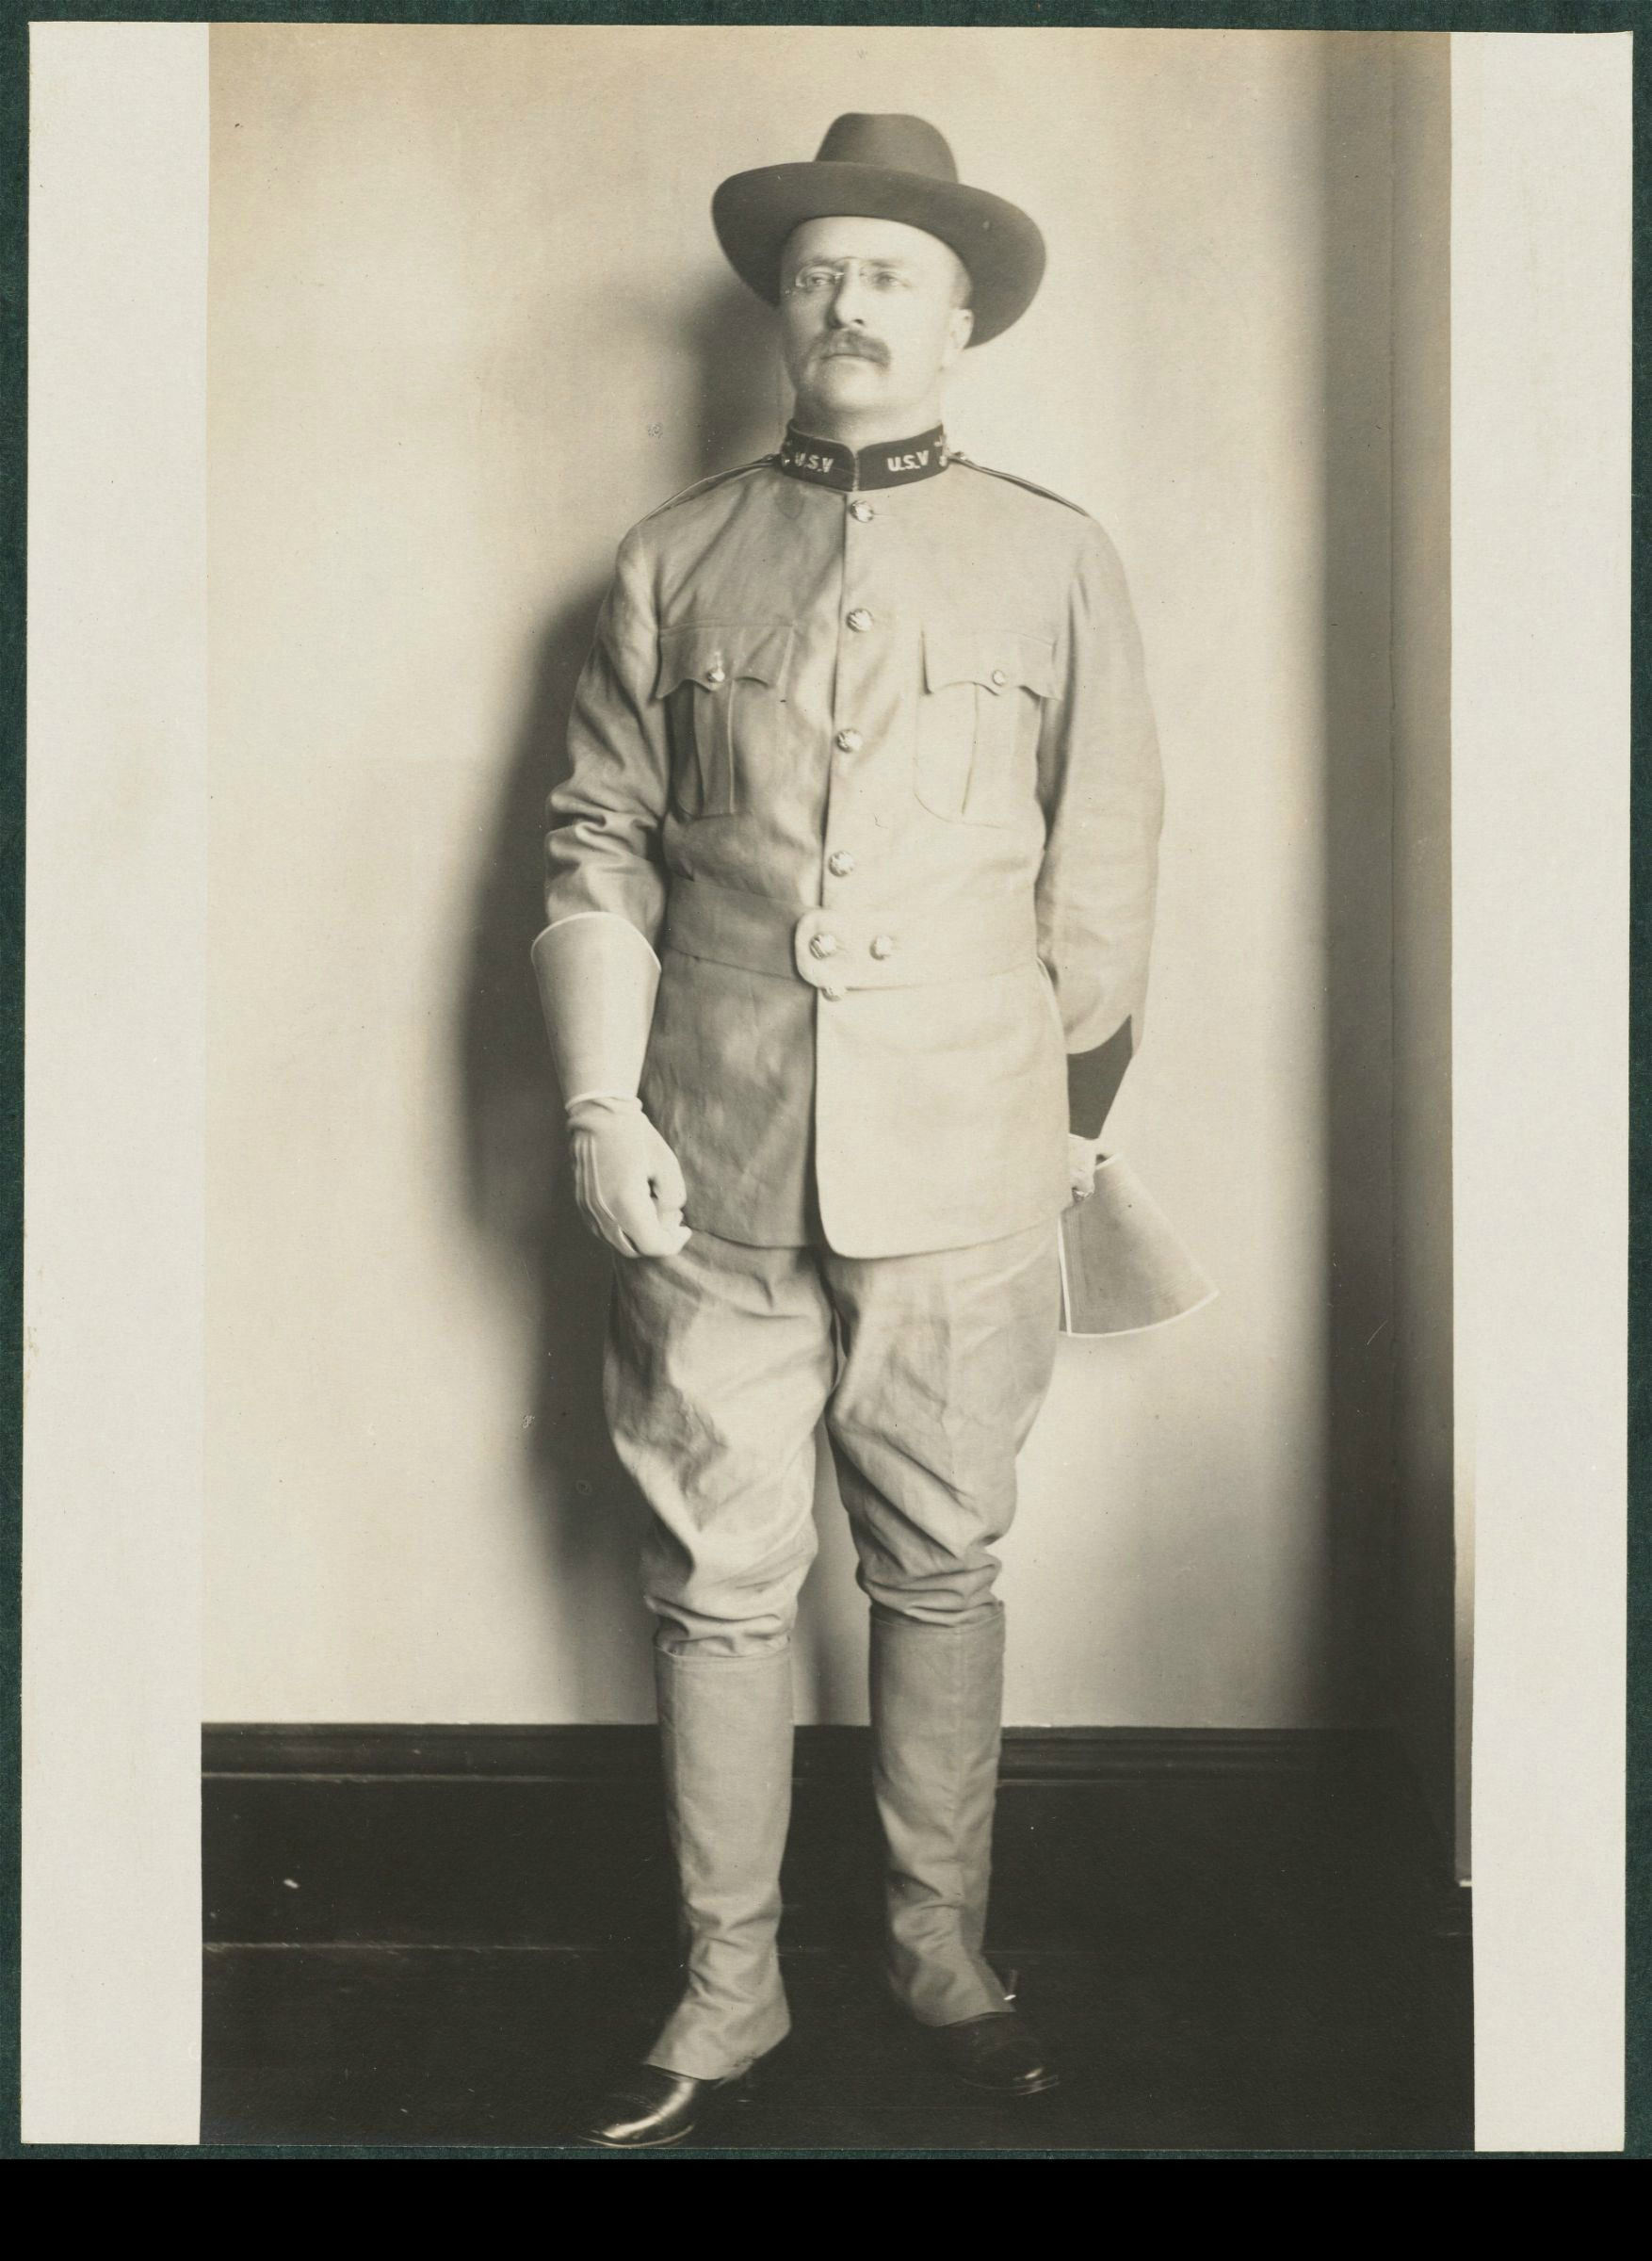 A Rough Guide To Types Of Scientific Evidence: Lieutenant Colonel Theodore Roosevelt Wearing His Rough